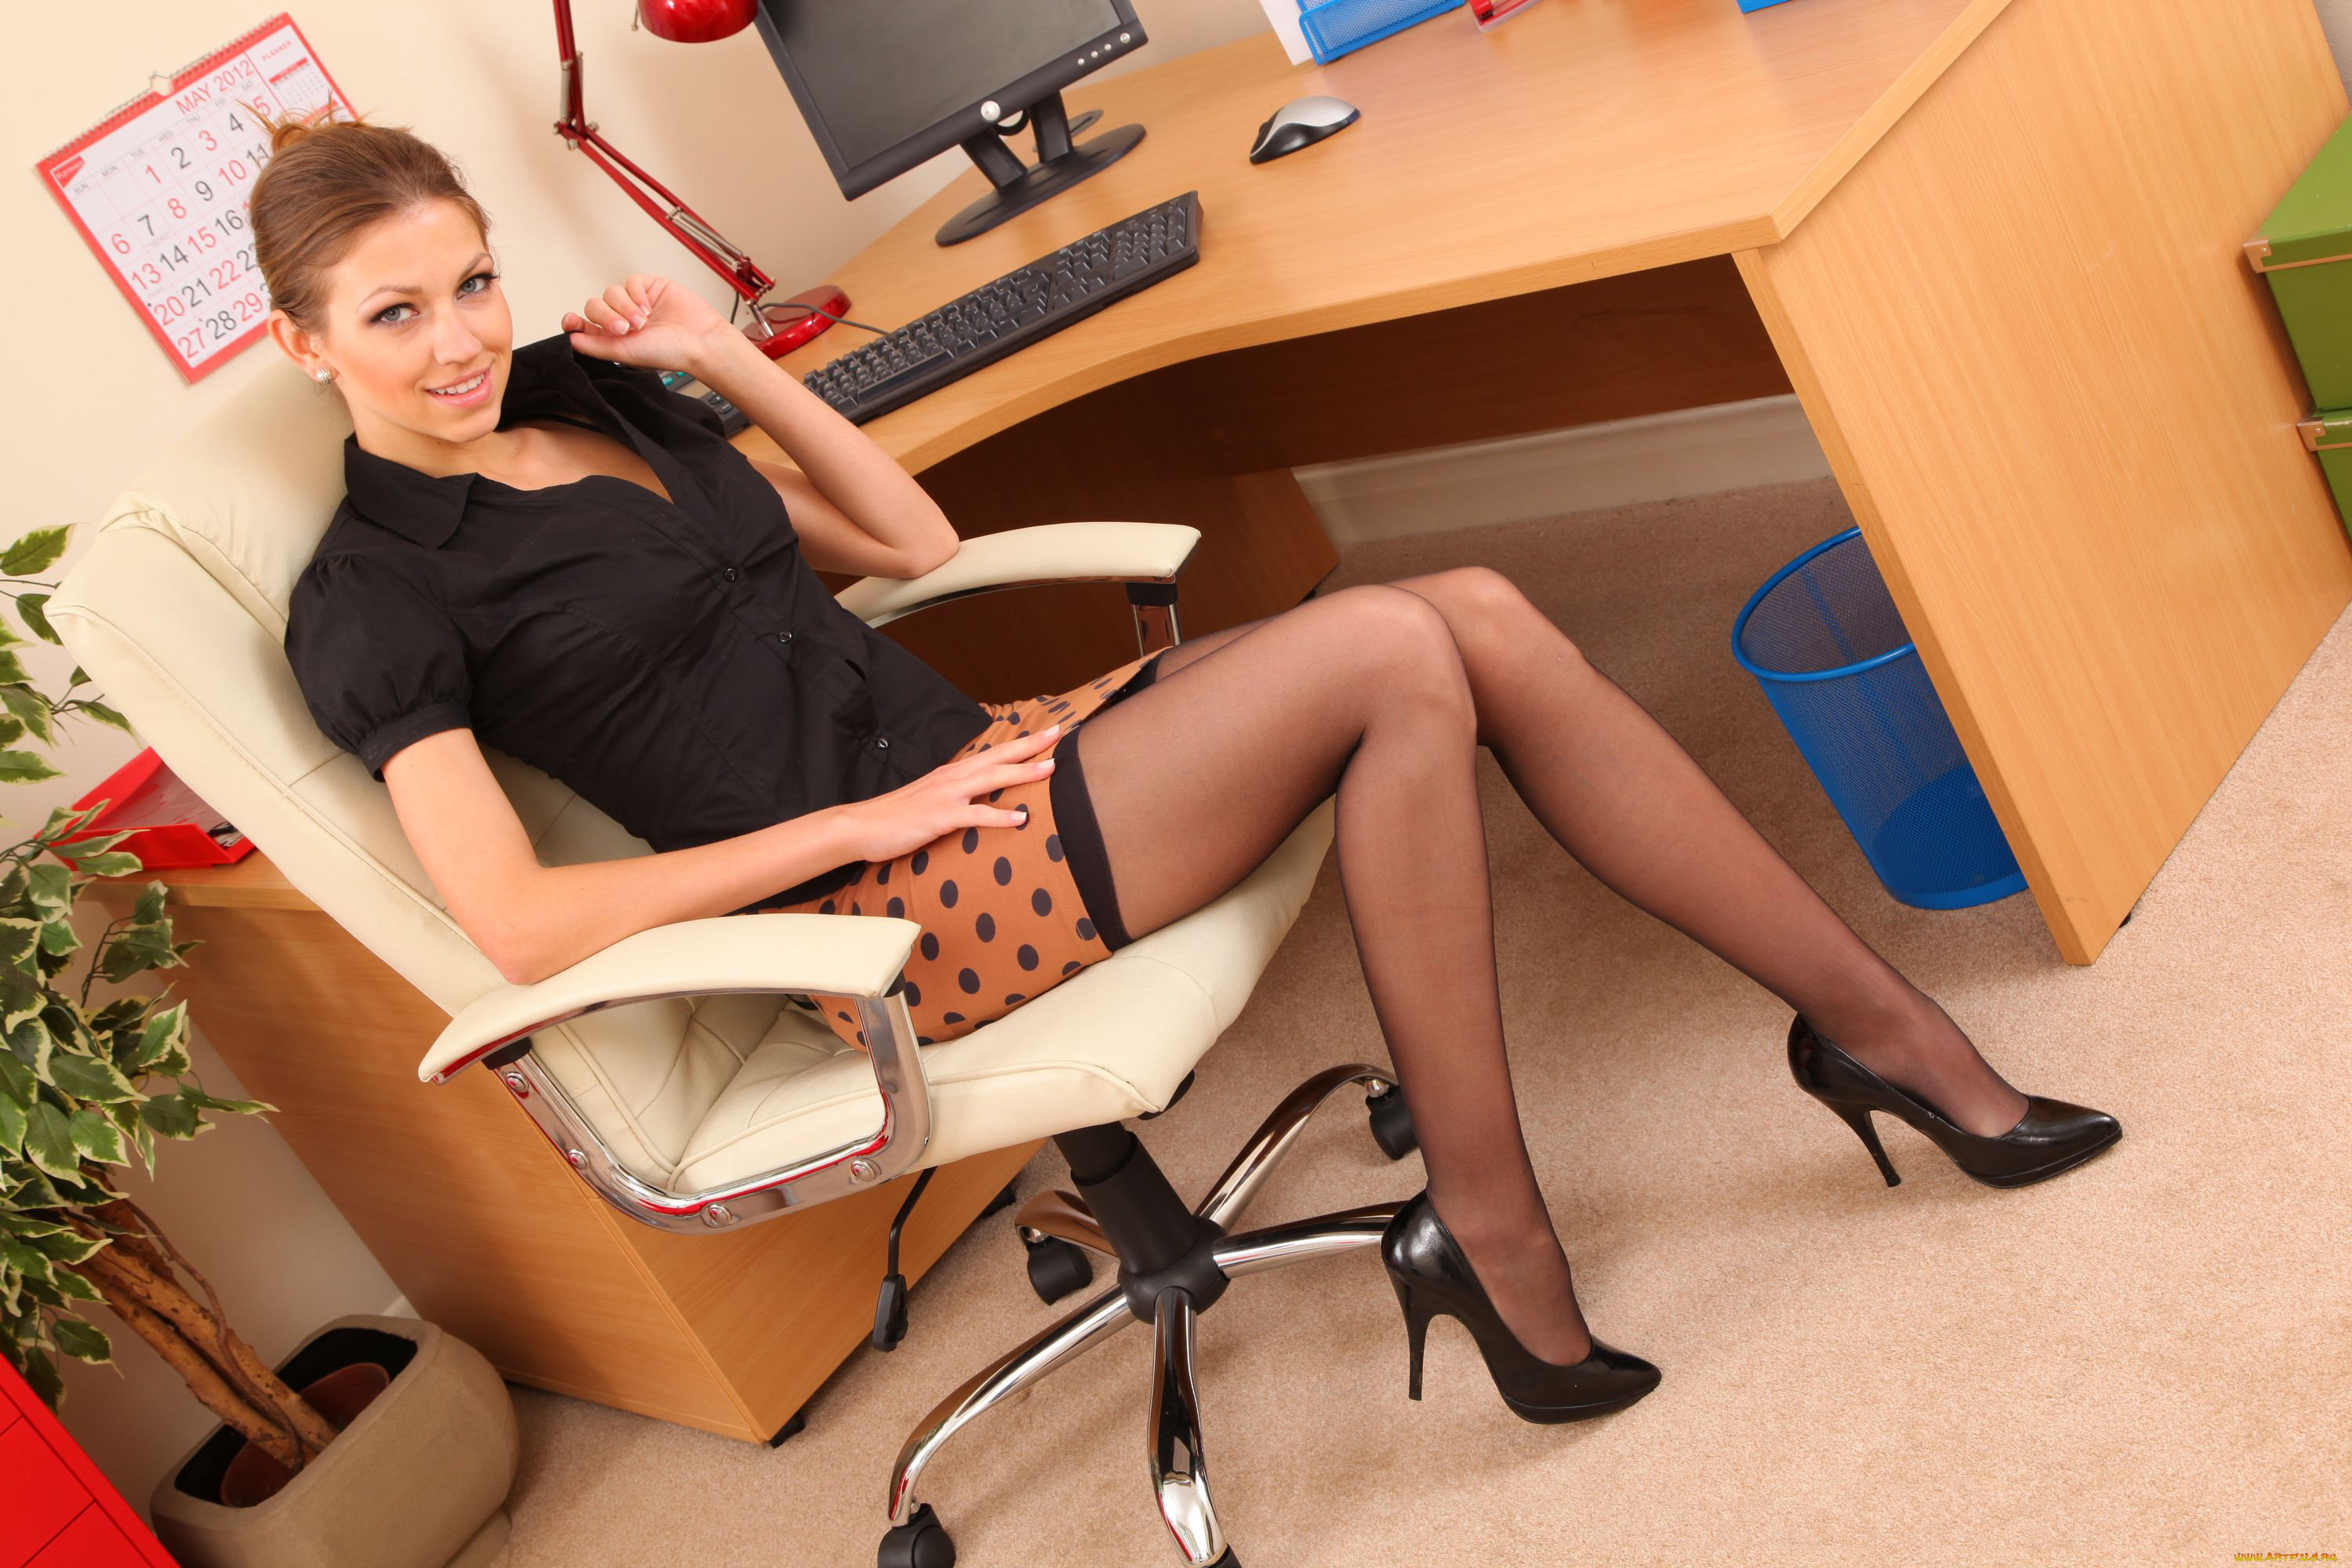 Leggy secretary Simone Style posing stripping naked for MILF pornstar debut  30239